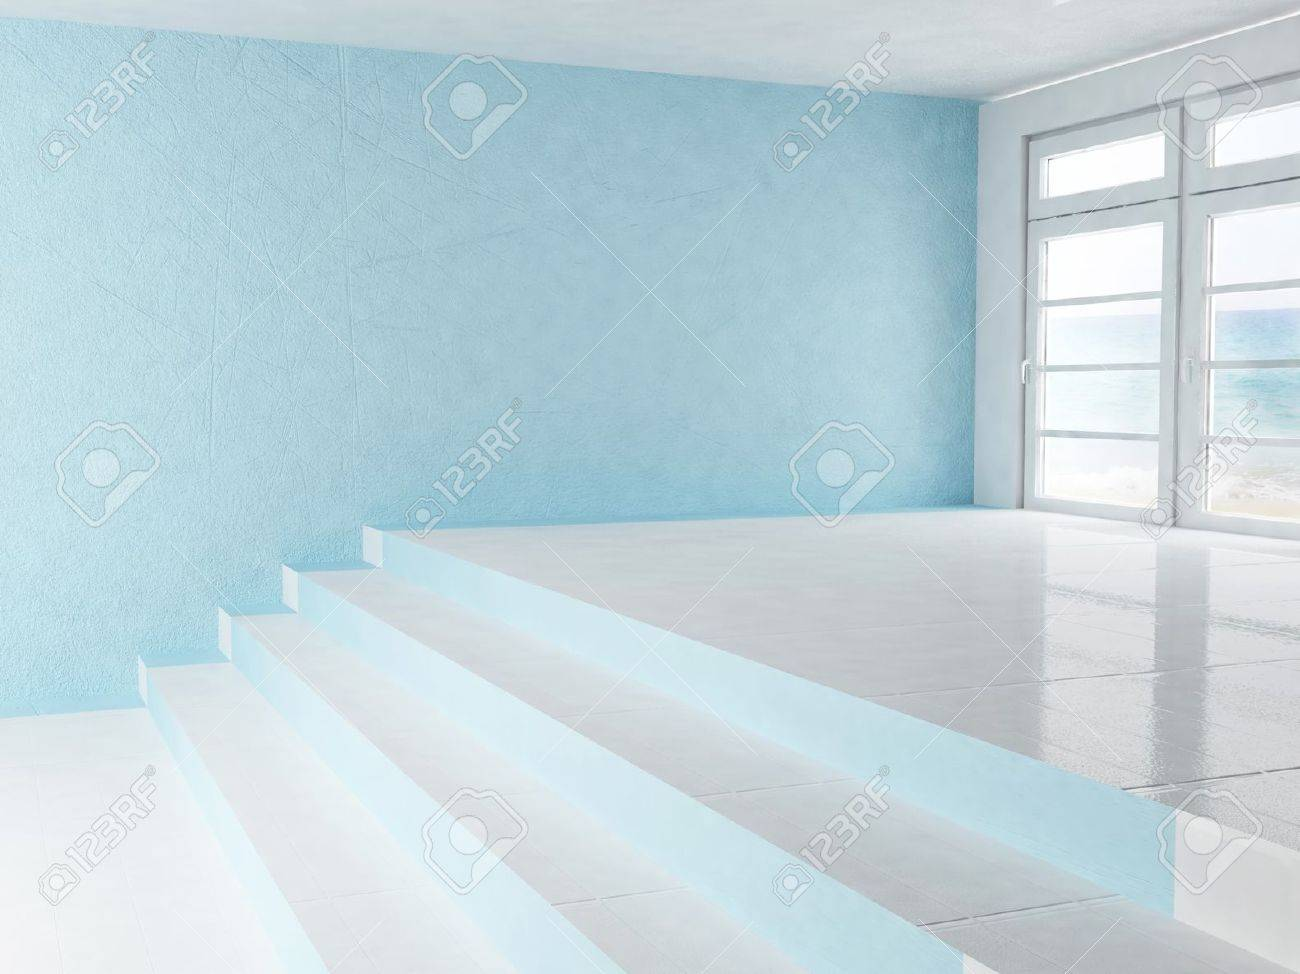 empty interior with a window and a stairs stock photo, picture and